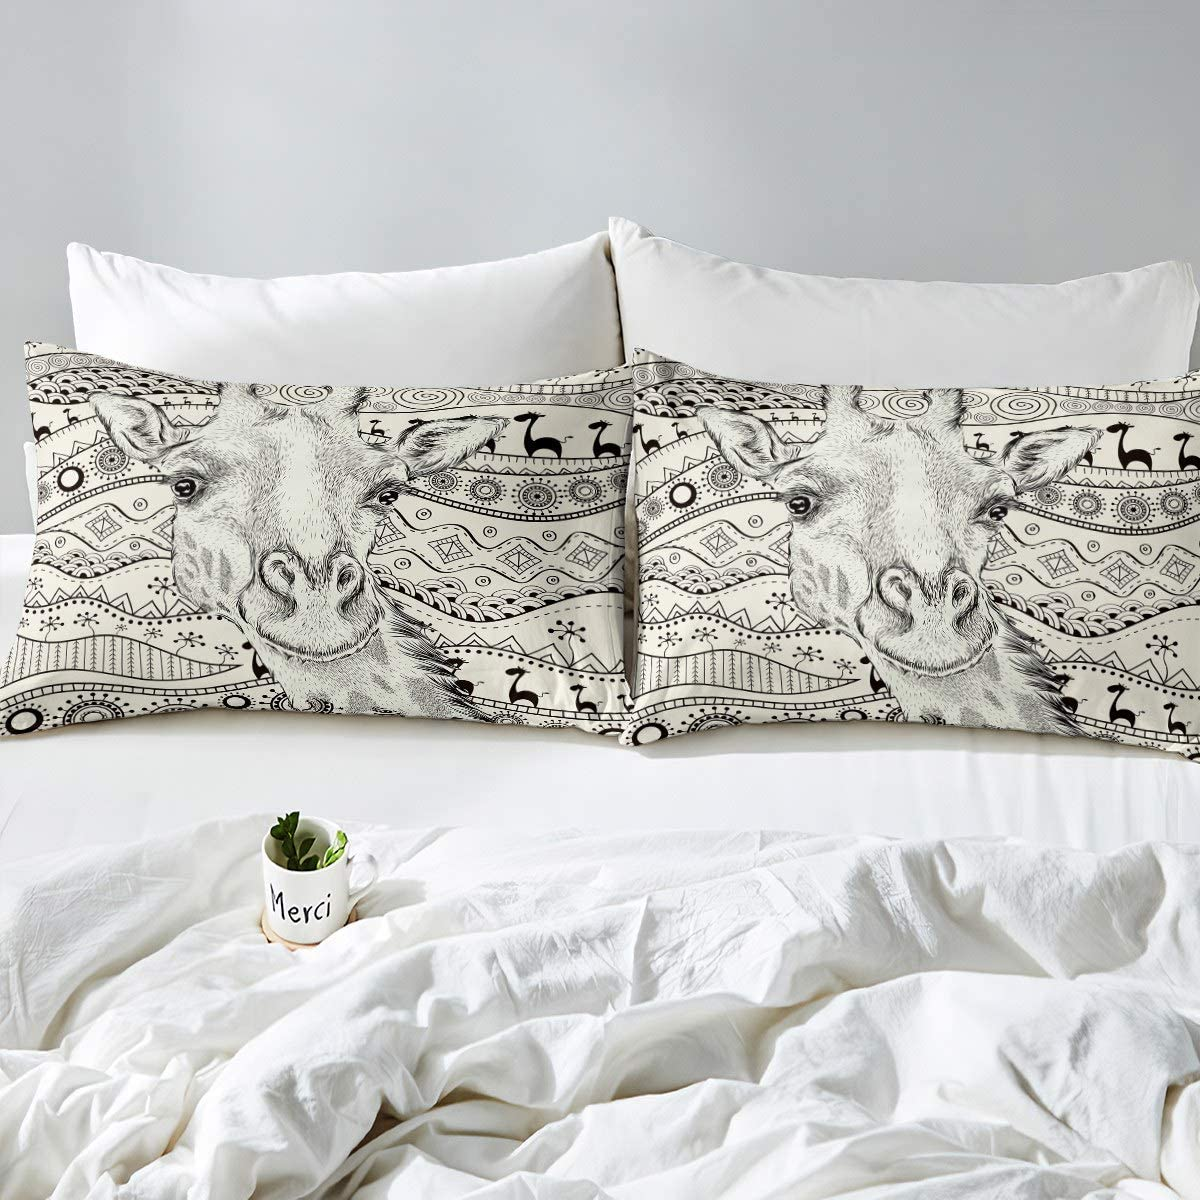 Dreamcatcher Duvet Cover Boho Dream Catcher Bedding Set Bohemian Moon Comforter Cover for Girls Women Indian Hippie Feather Decor Bedspread Cover Full Size with 2 Pillow Case